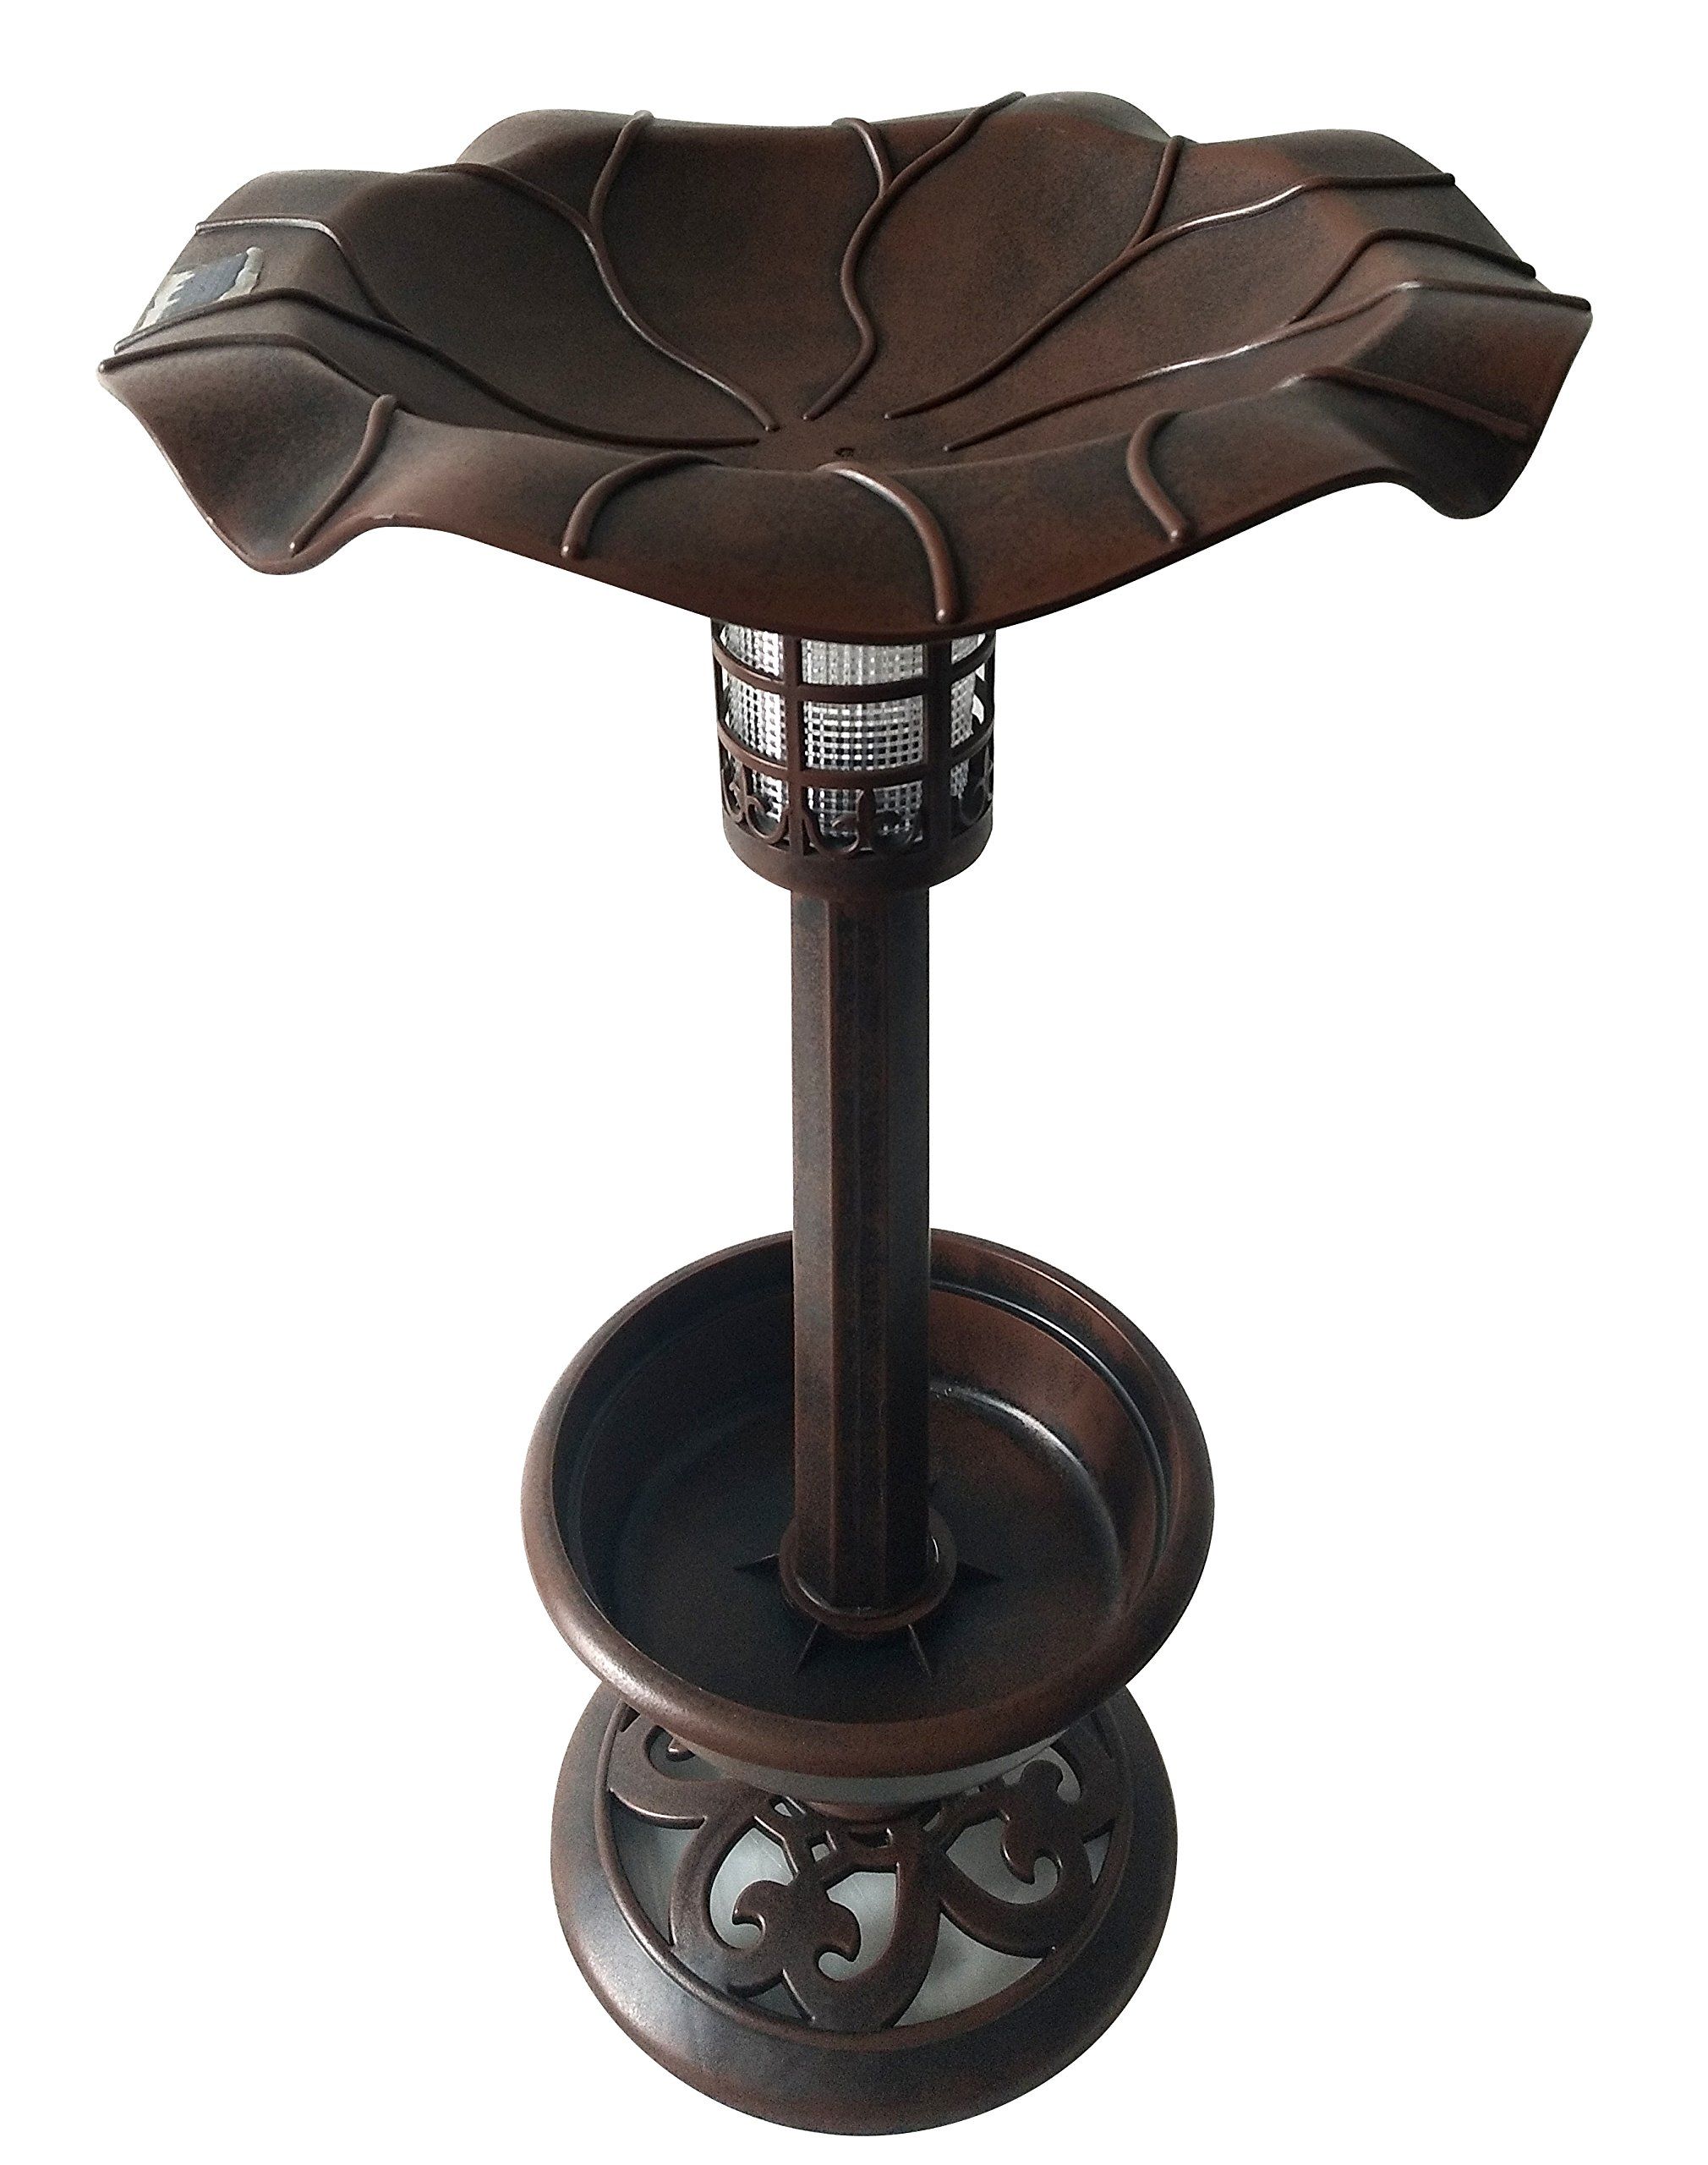 Backyard Expressions 914927 Bird Bath with Solar Light, Brown by Backyard Expressions